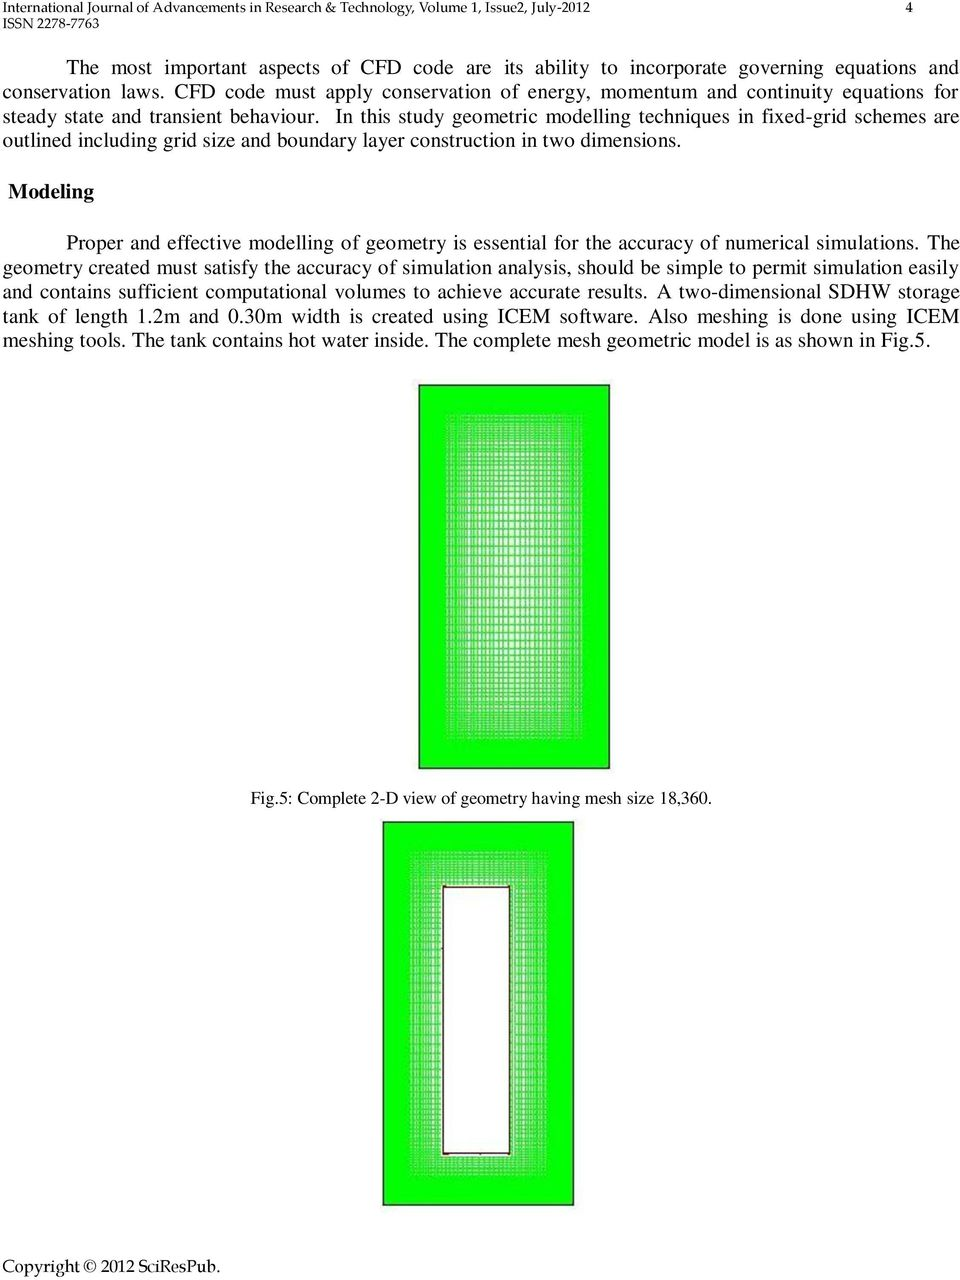 In this study geometric modelling techniques in fixed-grid schemes are outlined including grid size and boundary layer construction in two dimensions.